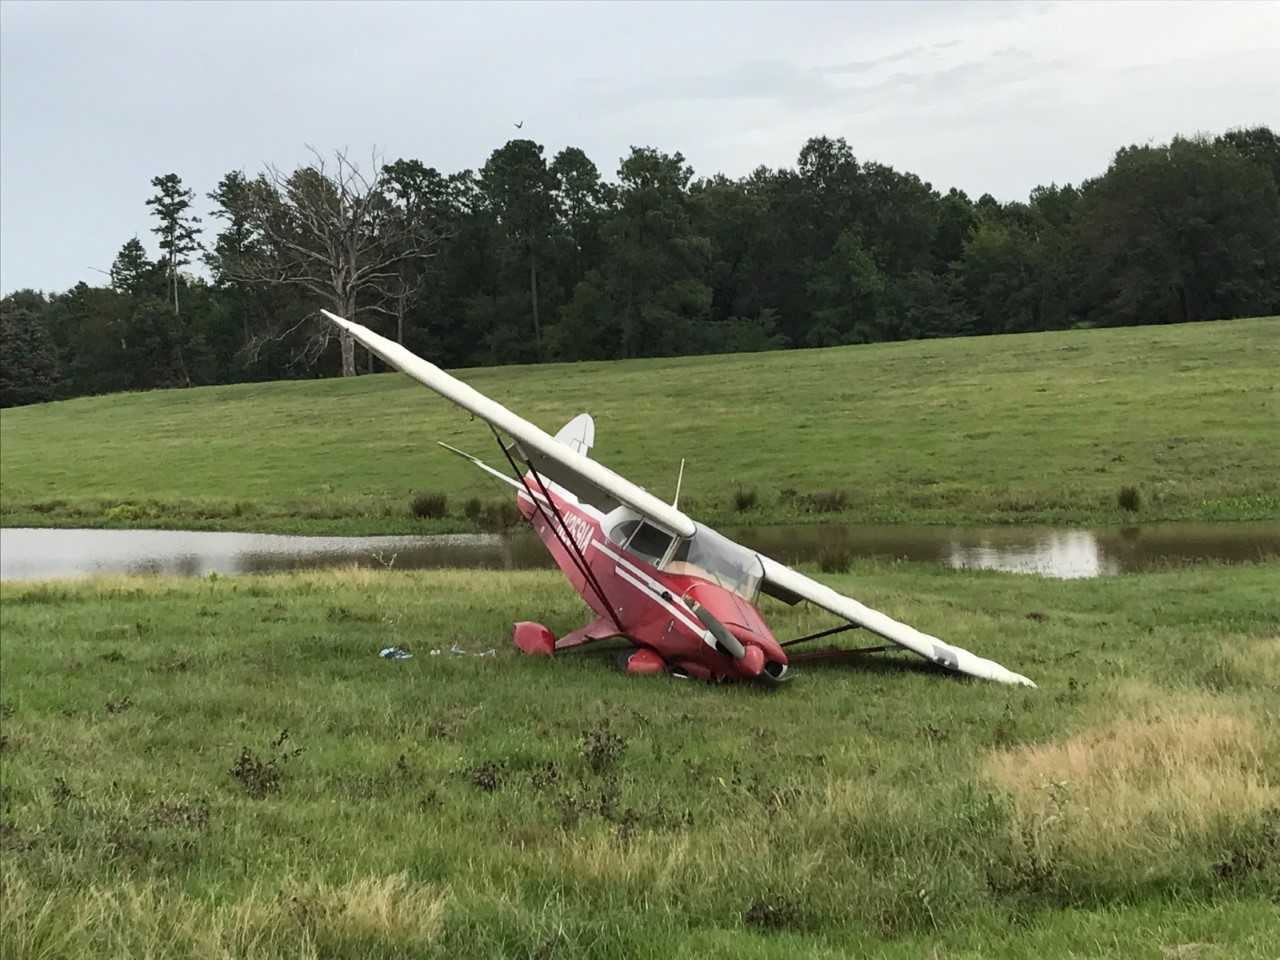 Kathryn's Report: Loss of Engine Power (Partial): Piper PA